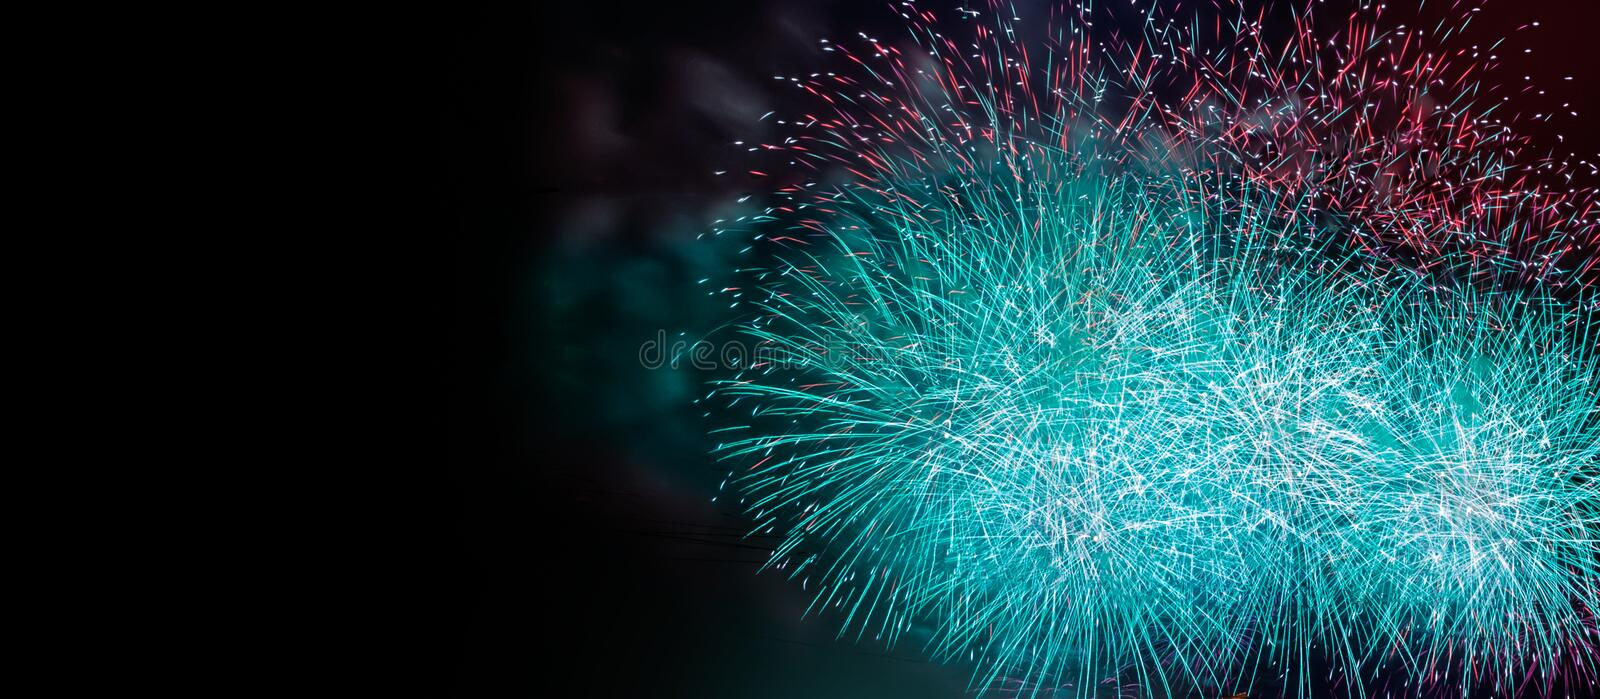 Abstract colored firework background with free copy space for text. Colorful celebration and anniversary concept for your design.  royalty free stock photos